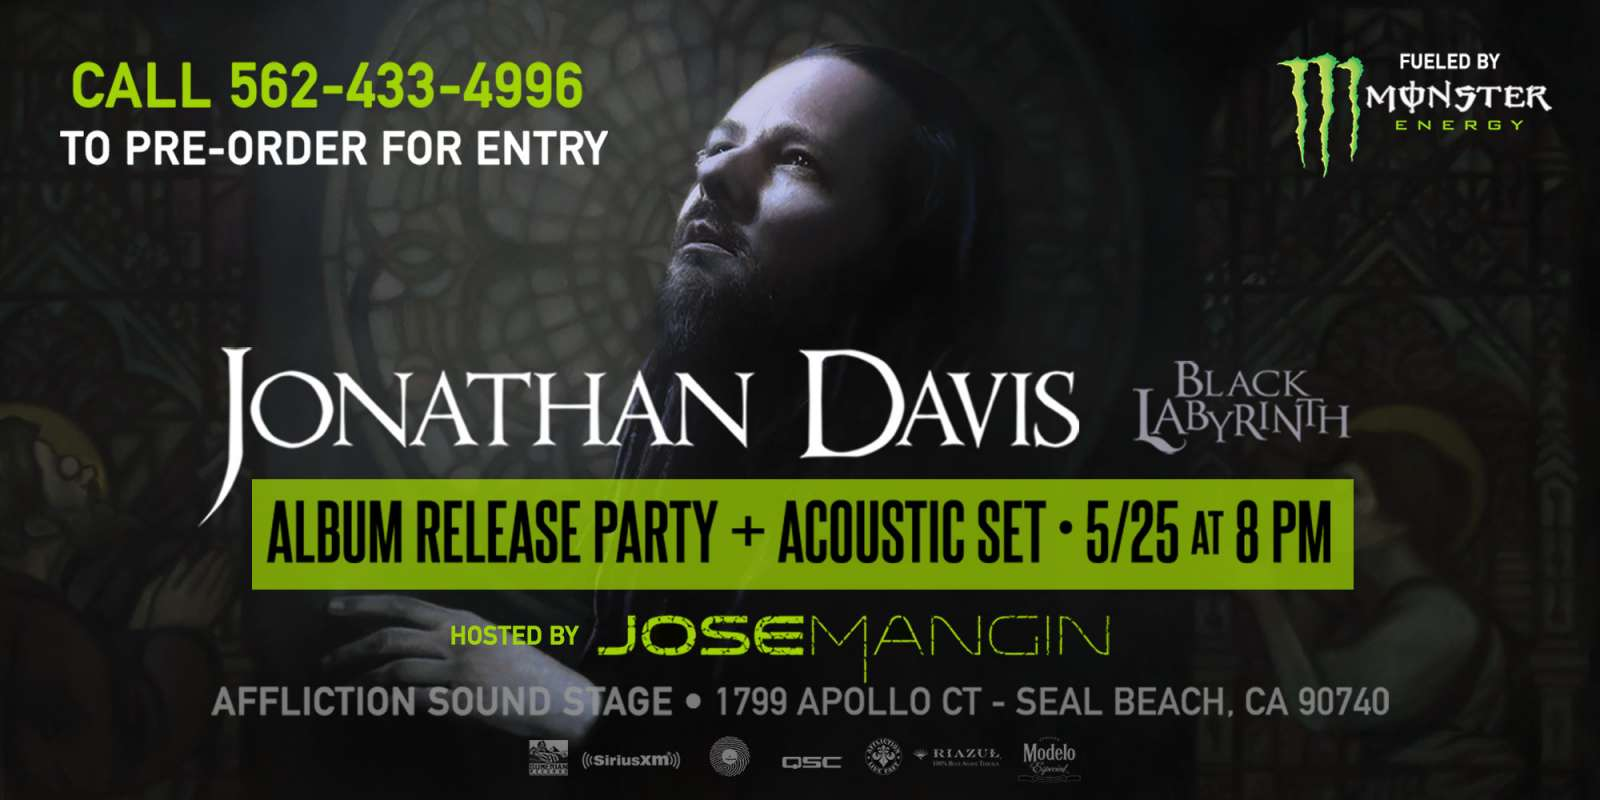 Jonathan Davis album release party asset